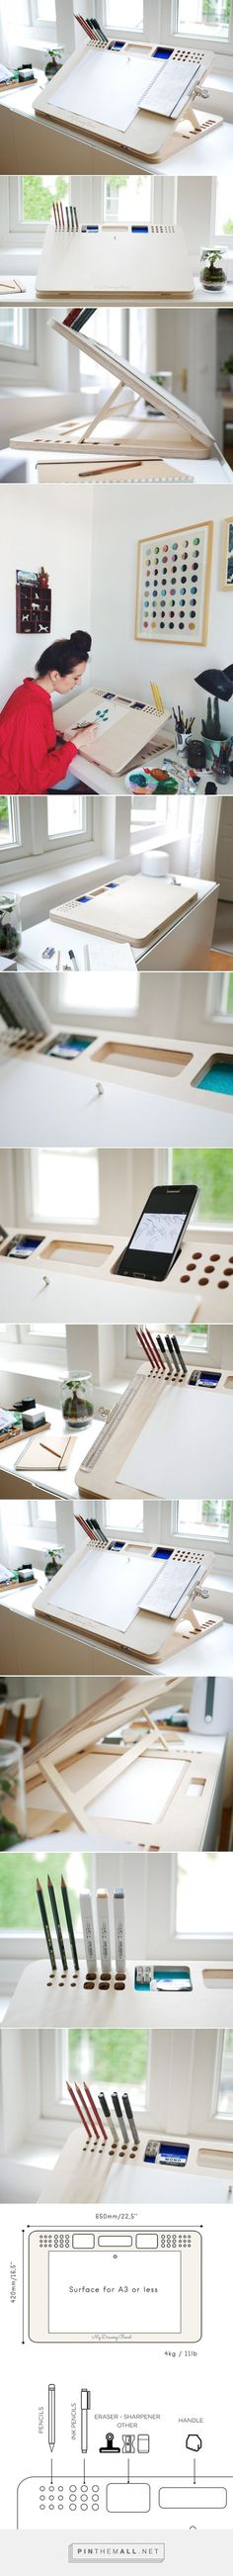 My Drawing Board la table à dessin par Benjamin Benais - Blog Esprit Design Necesito esrooooo  I want to cry...